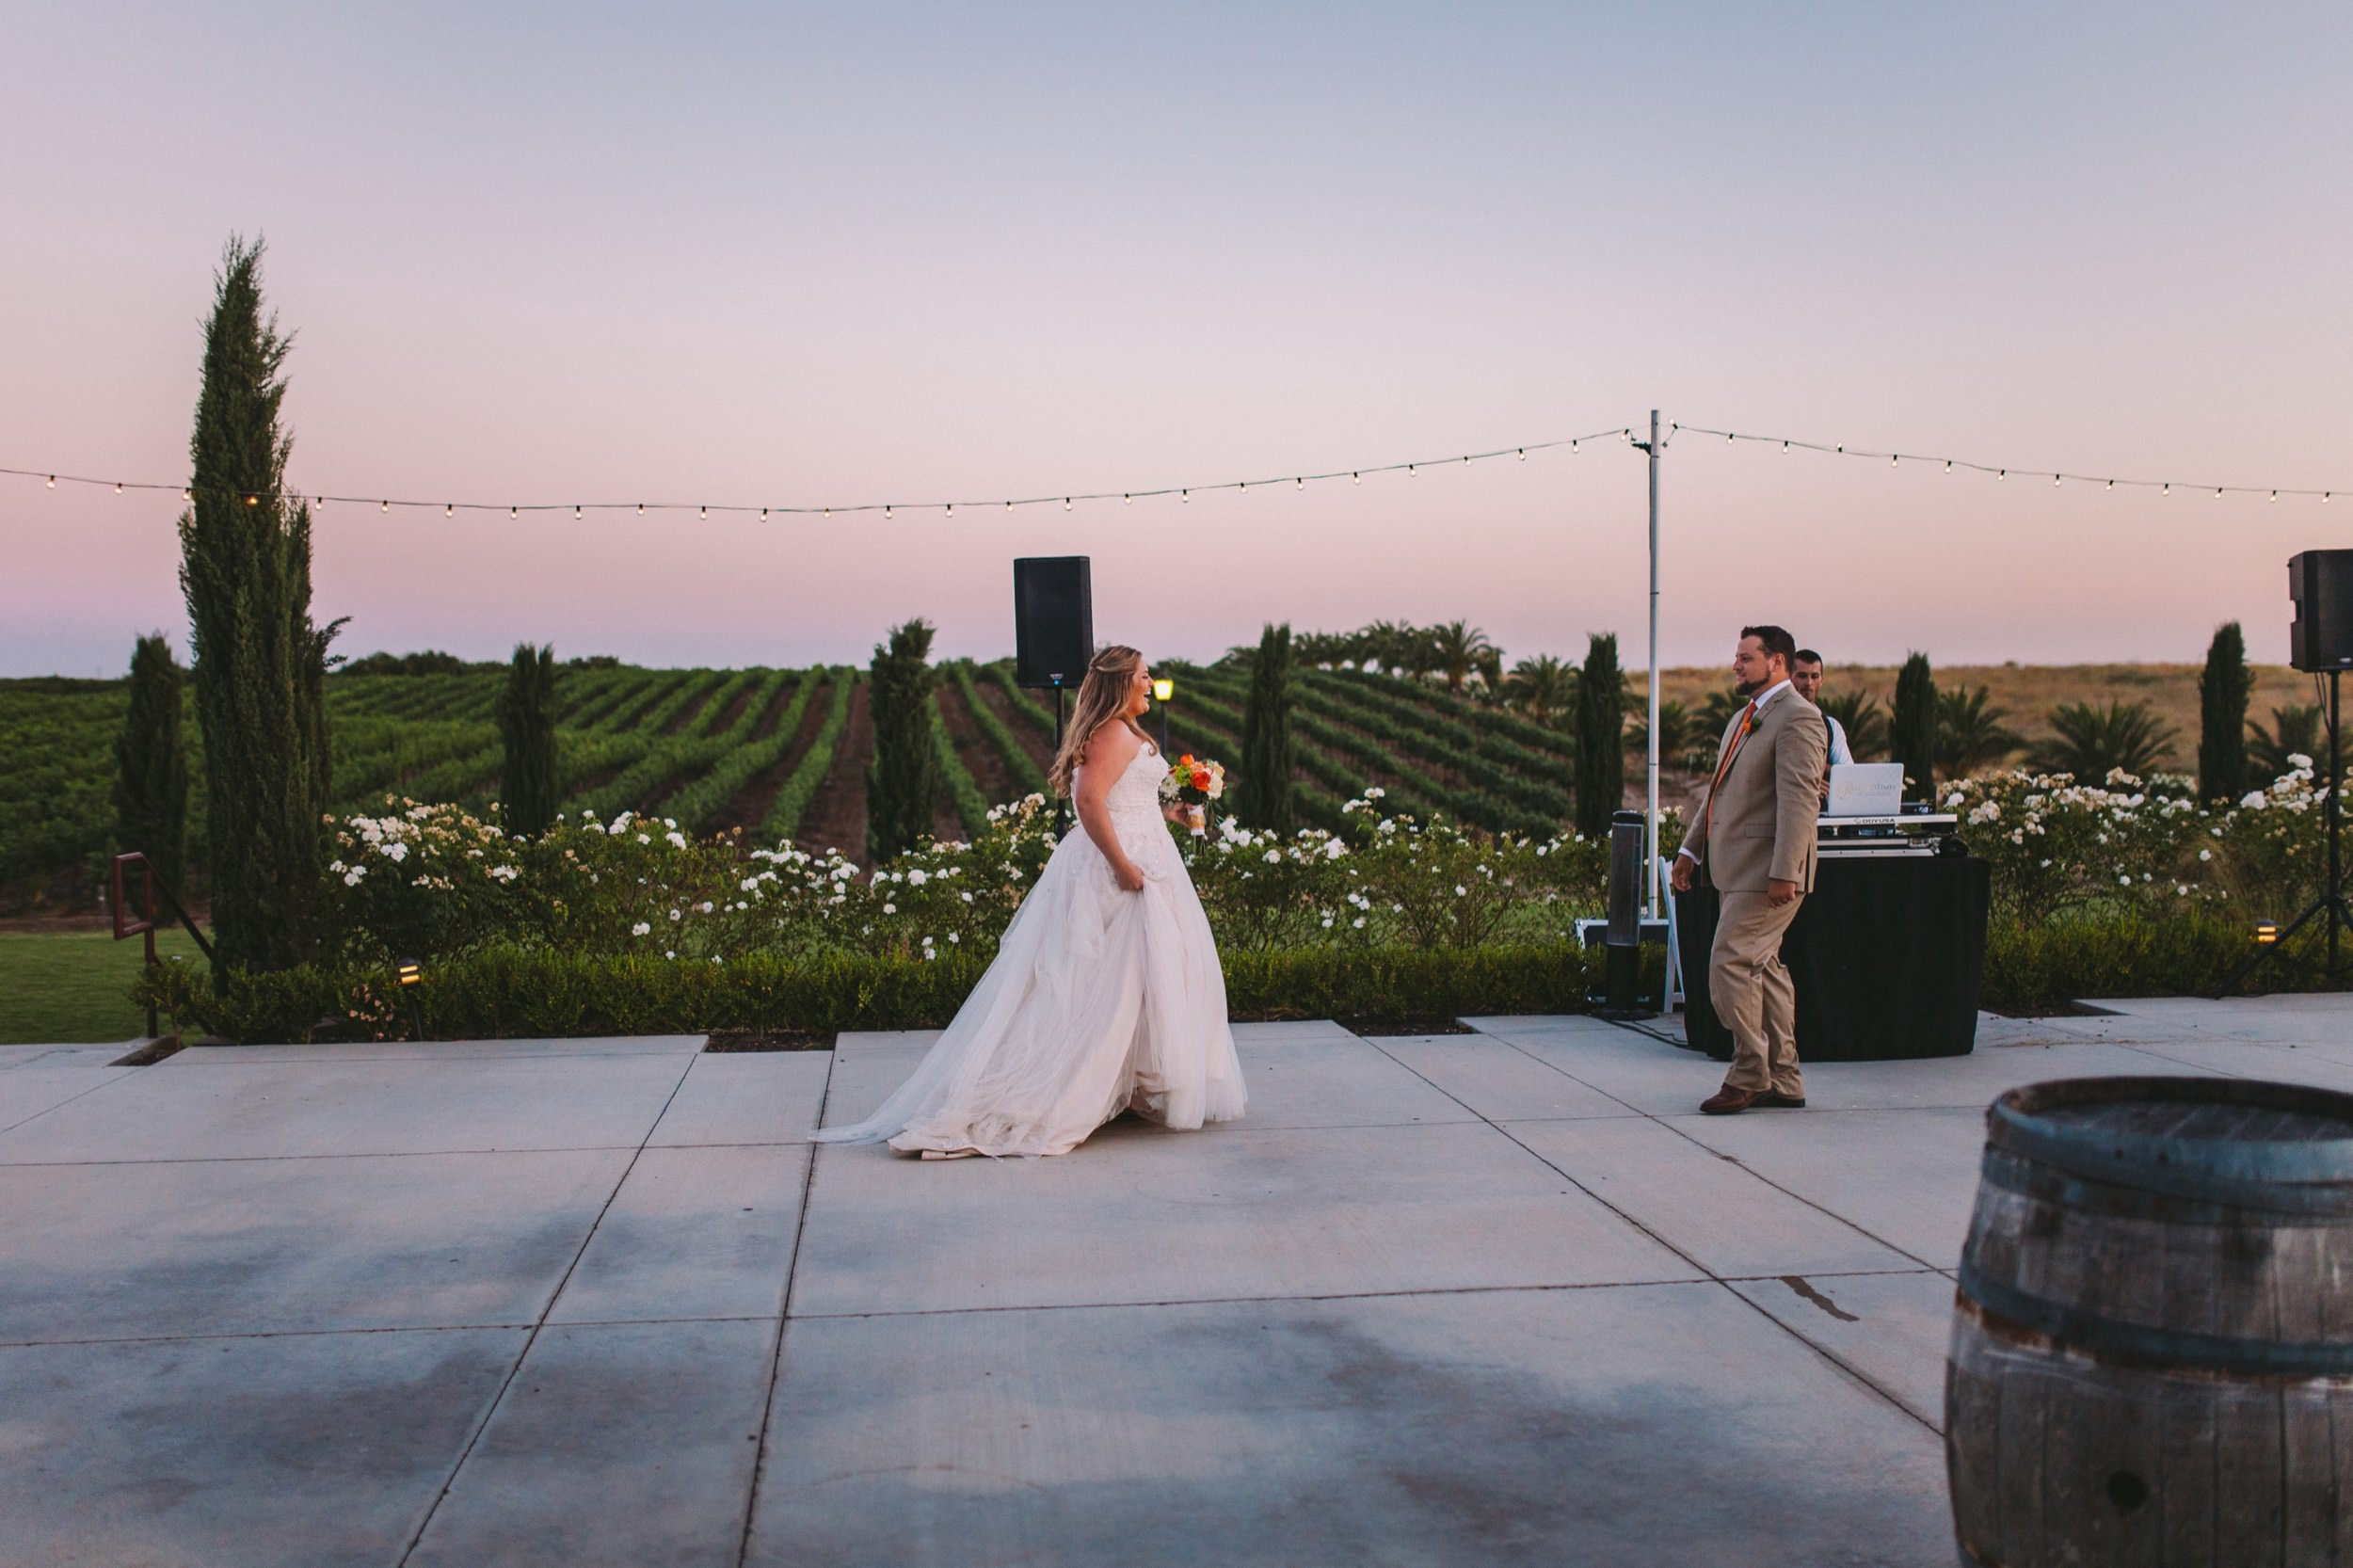 Toca Madera Winery Wedding Photography 136.jpg